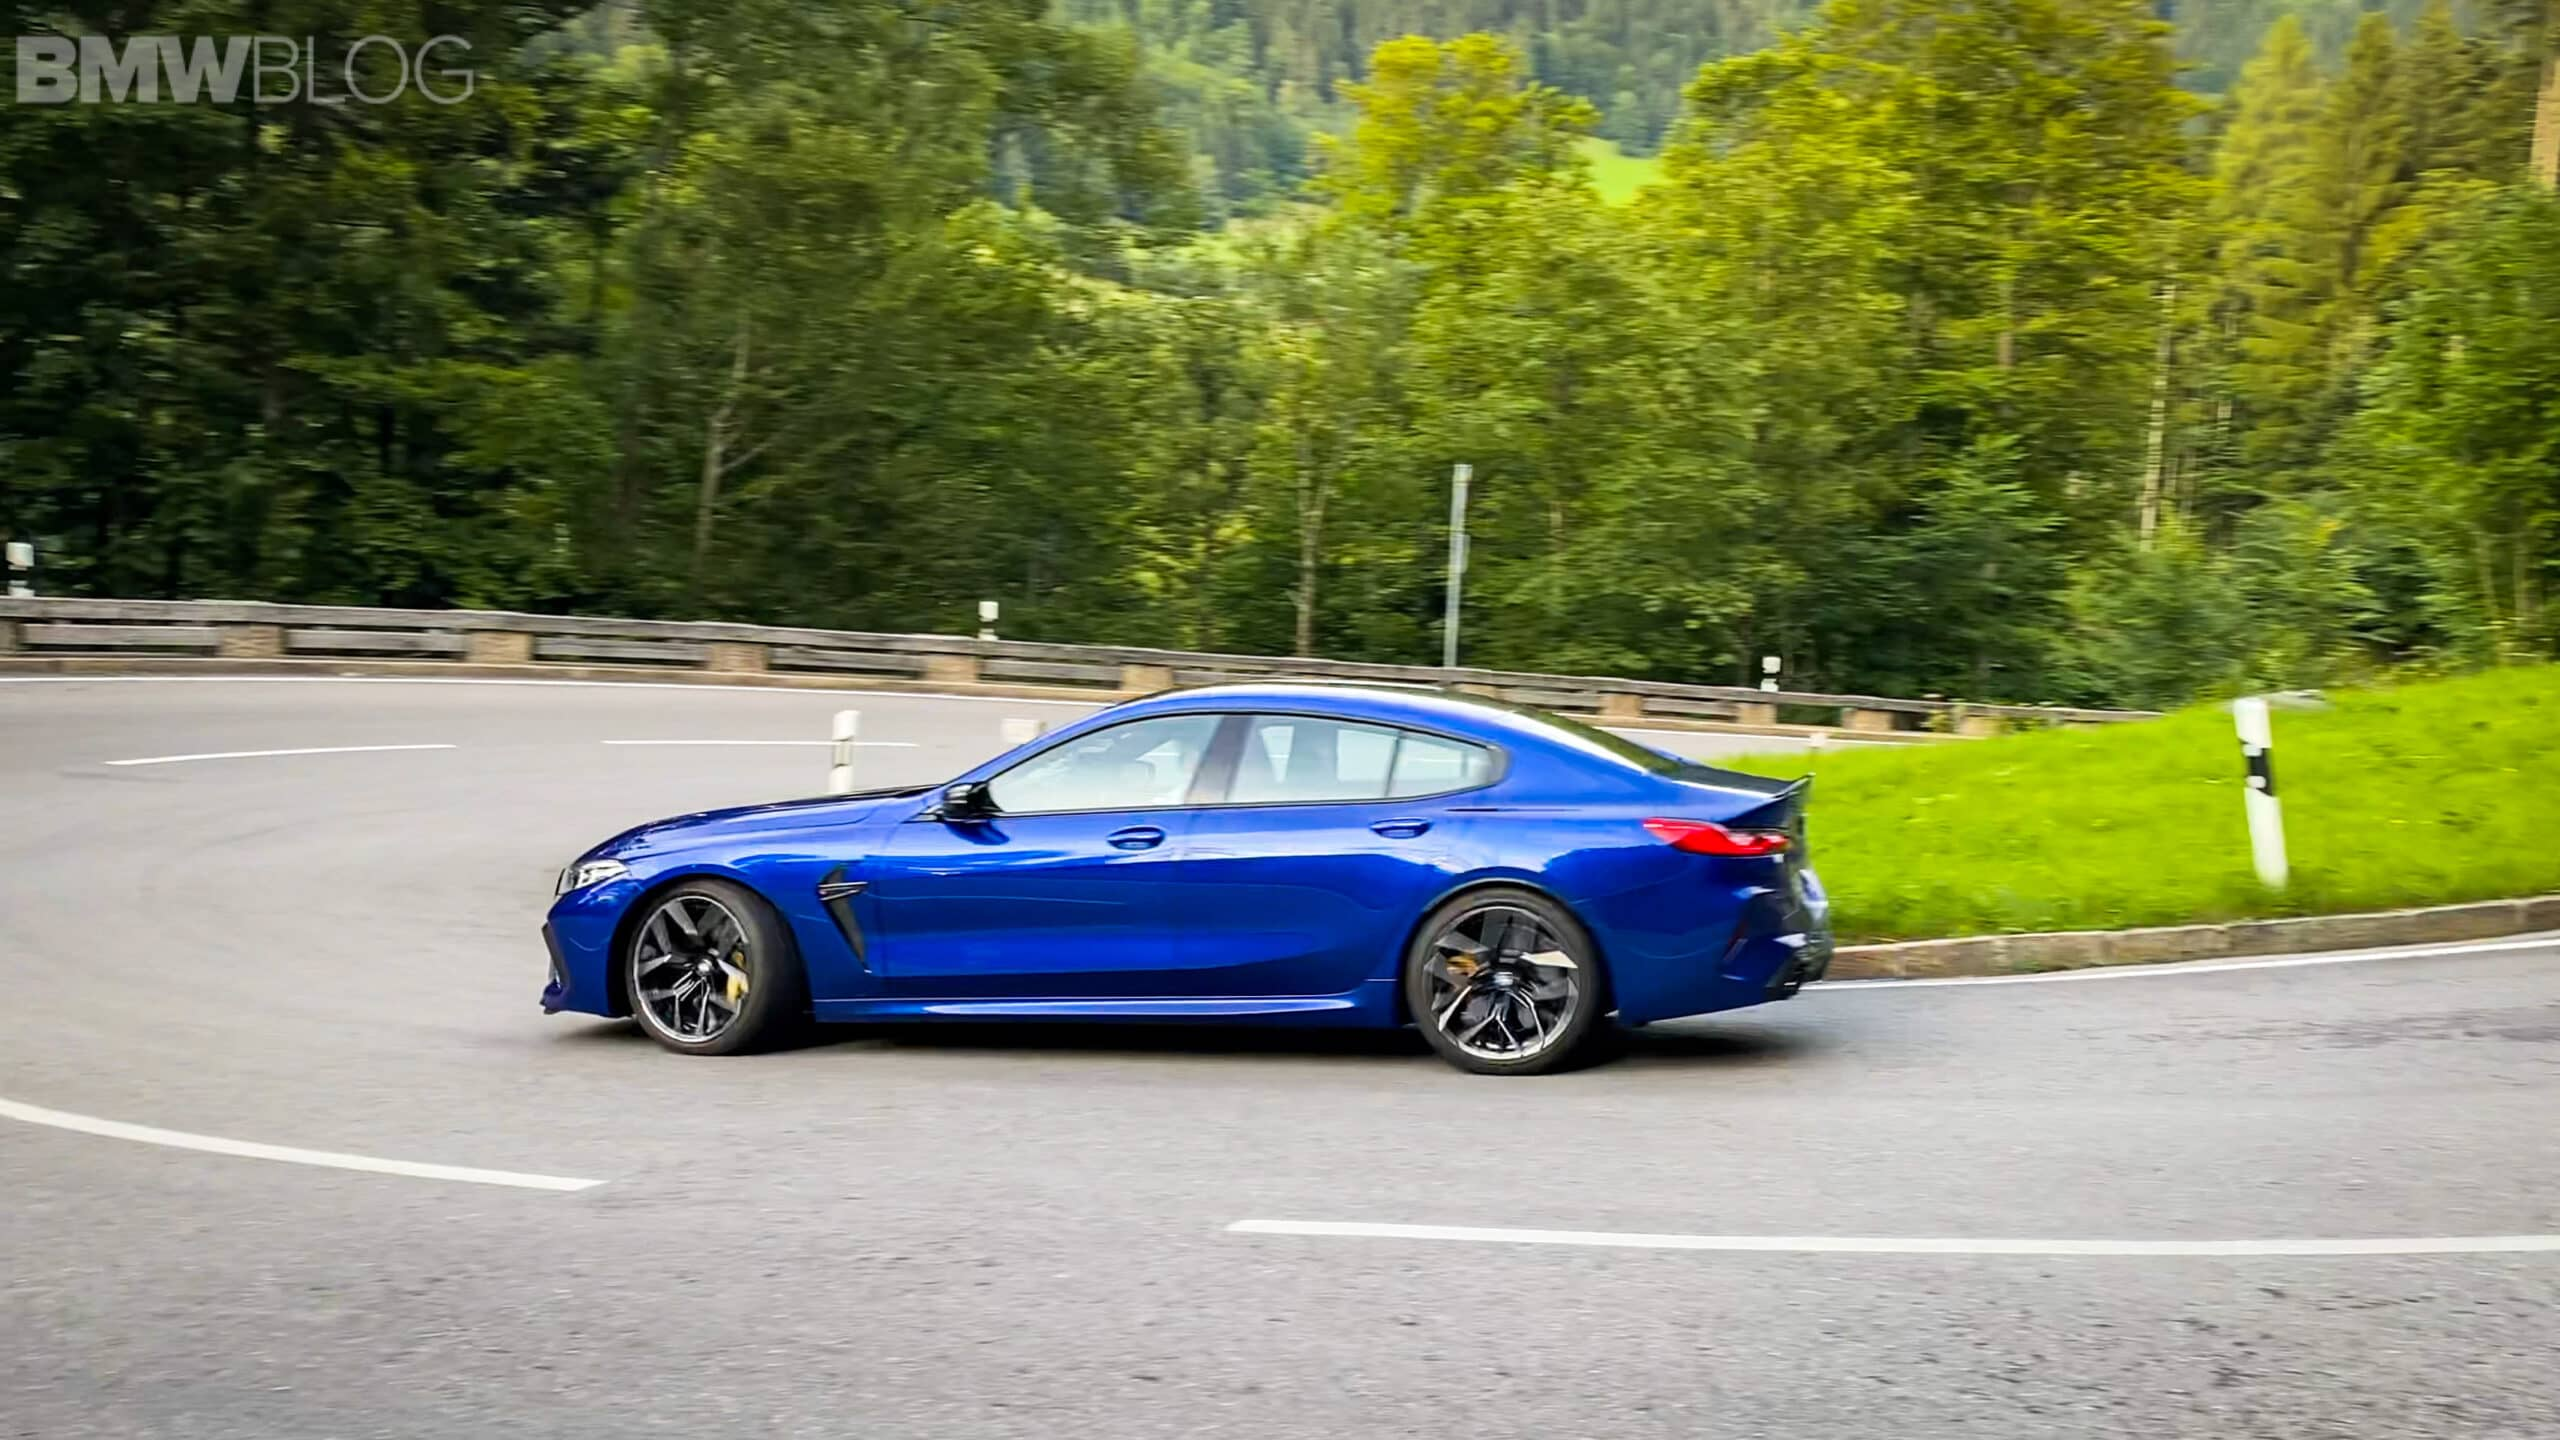 2023 bmw m8 gran coupe test Drive  23 scaled